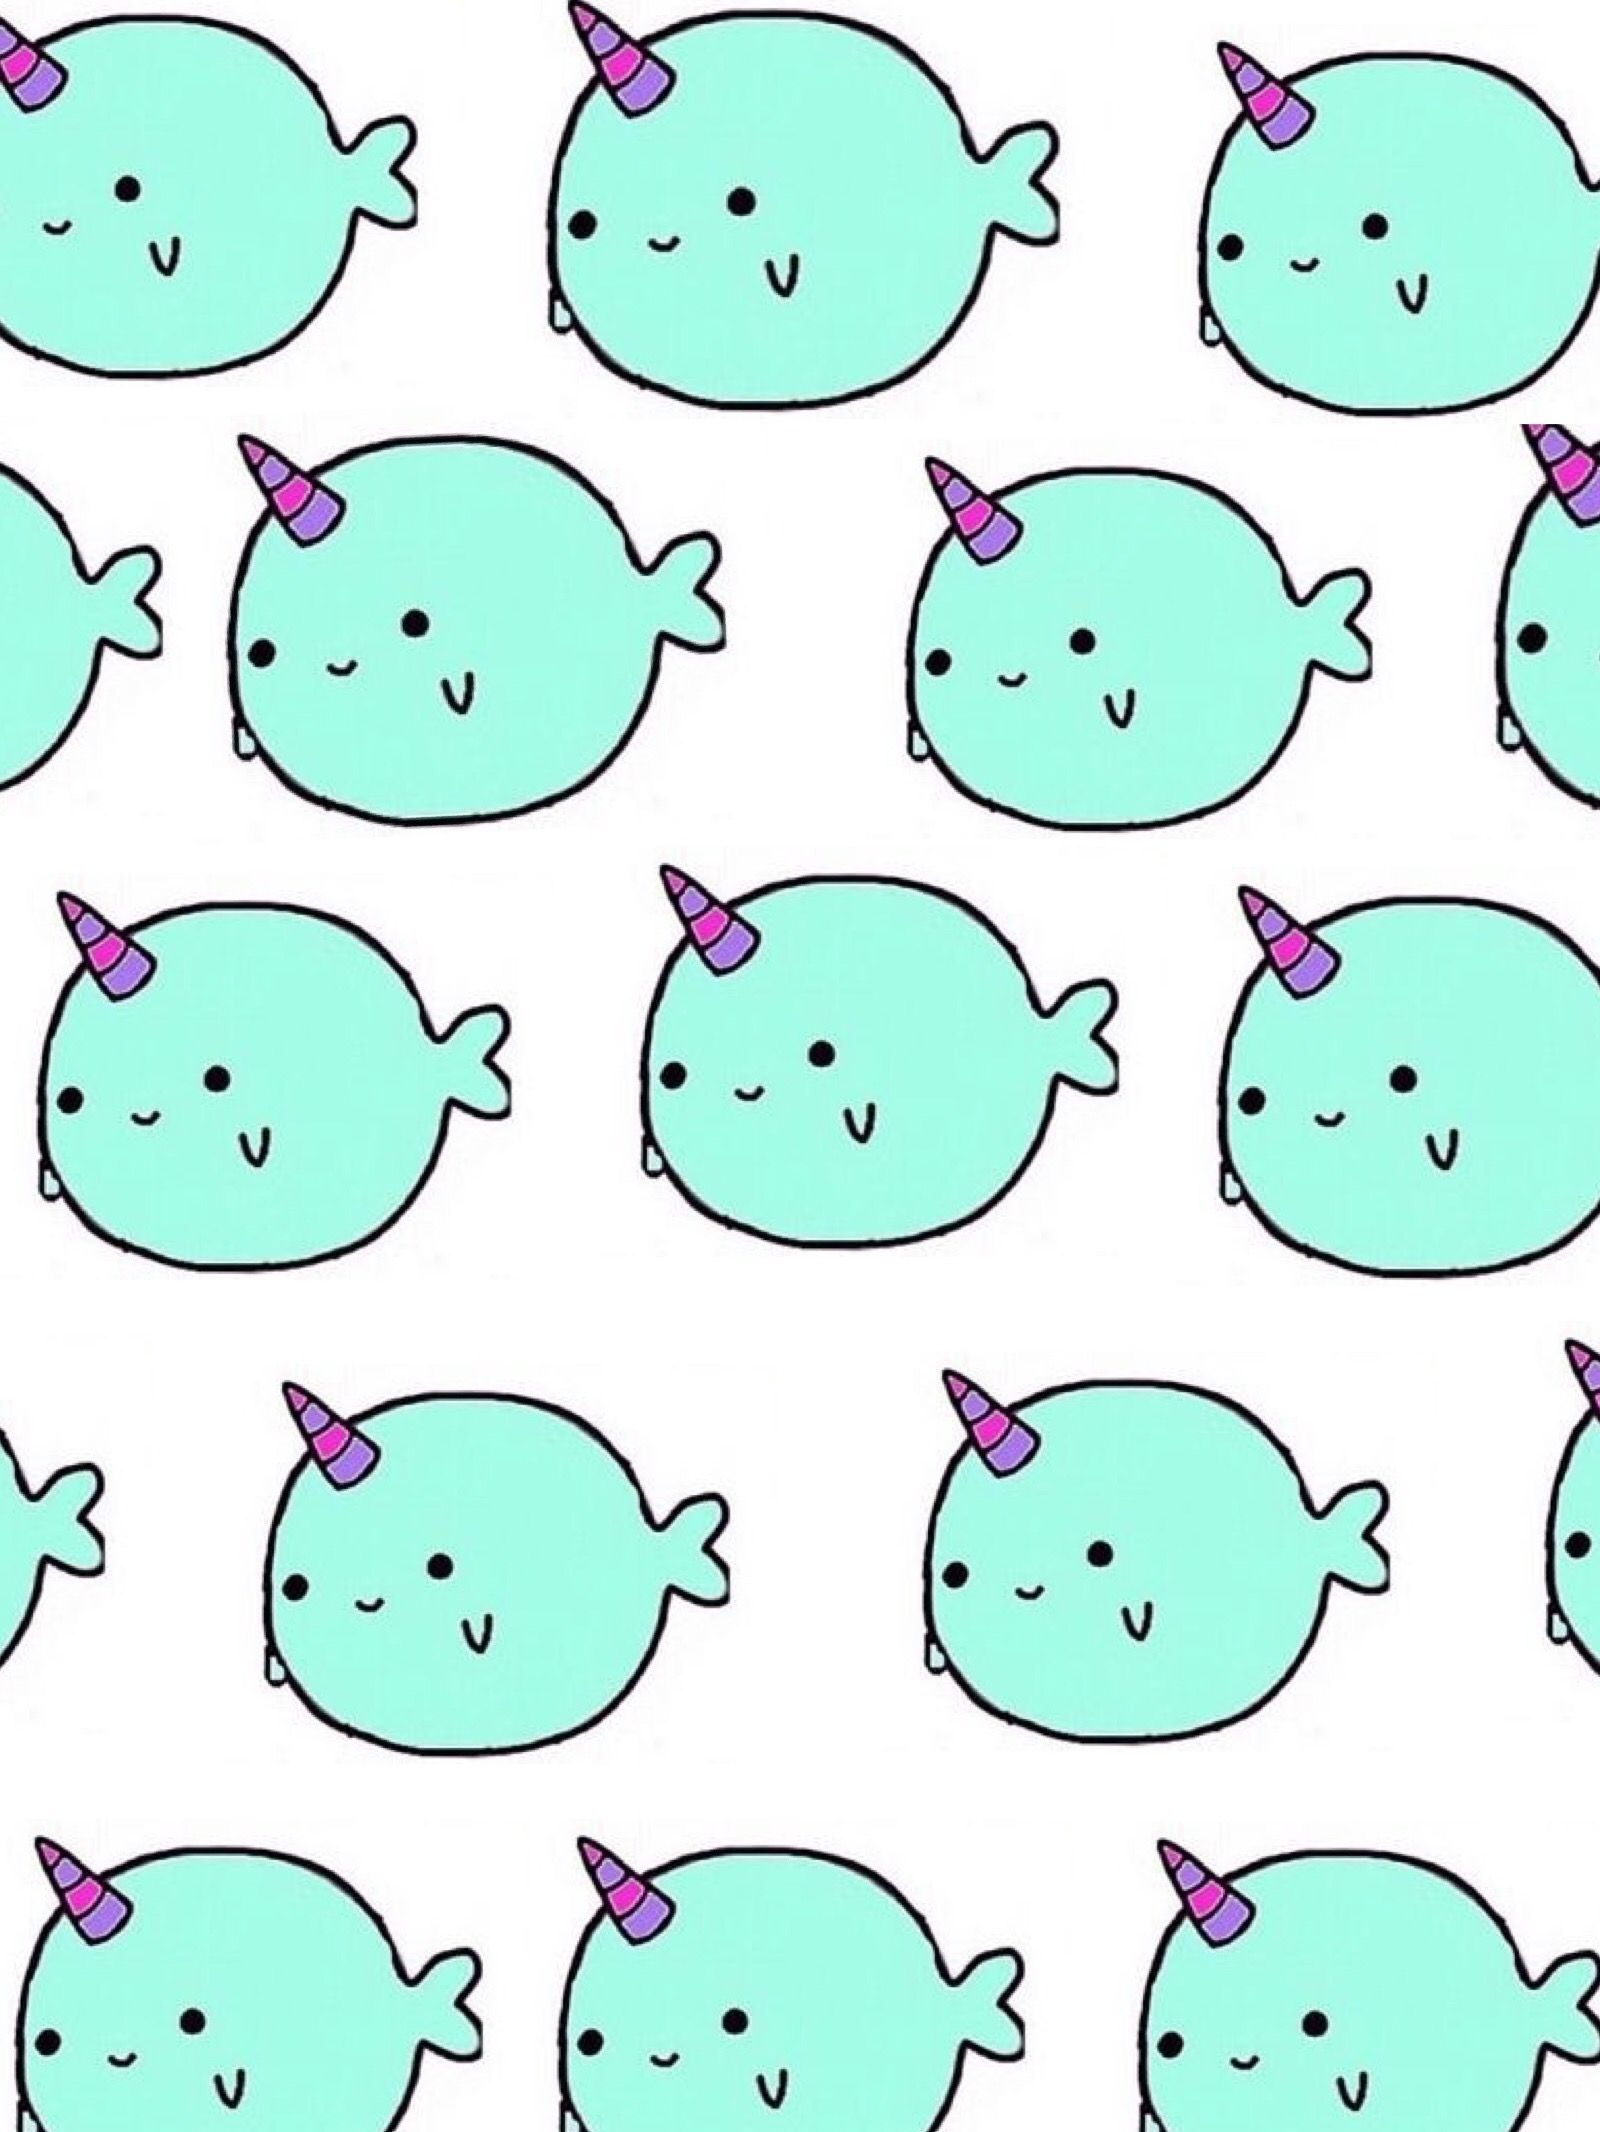 Narwhal Wallpaper Adorable Cute Narwhal Narwhal Drawing Wallpaper Iphone Cute